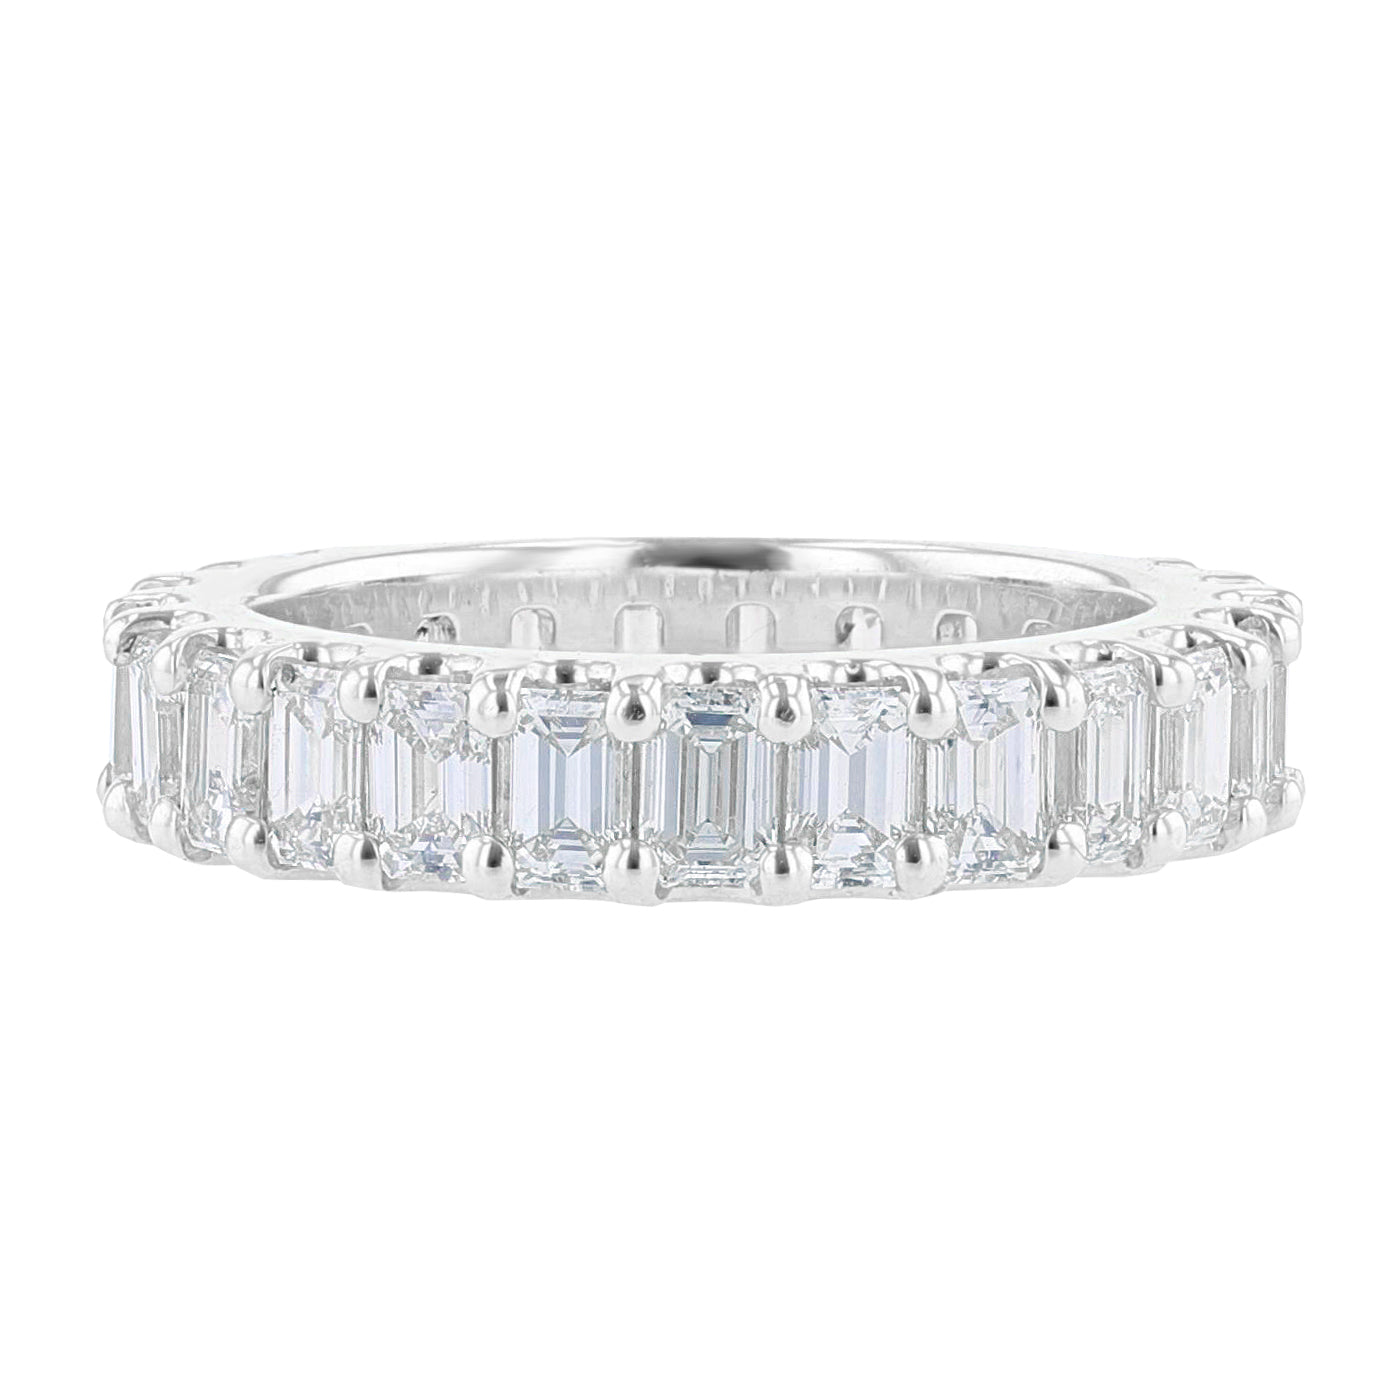 18K White Gold Emerald Cut Eternity Diamond Band